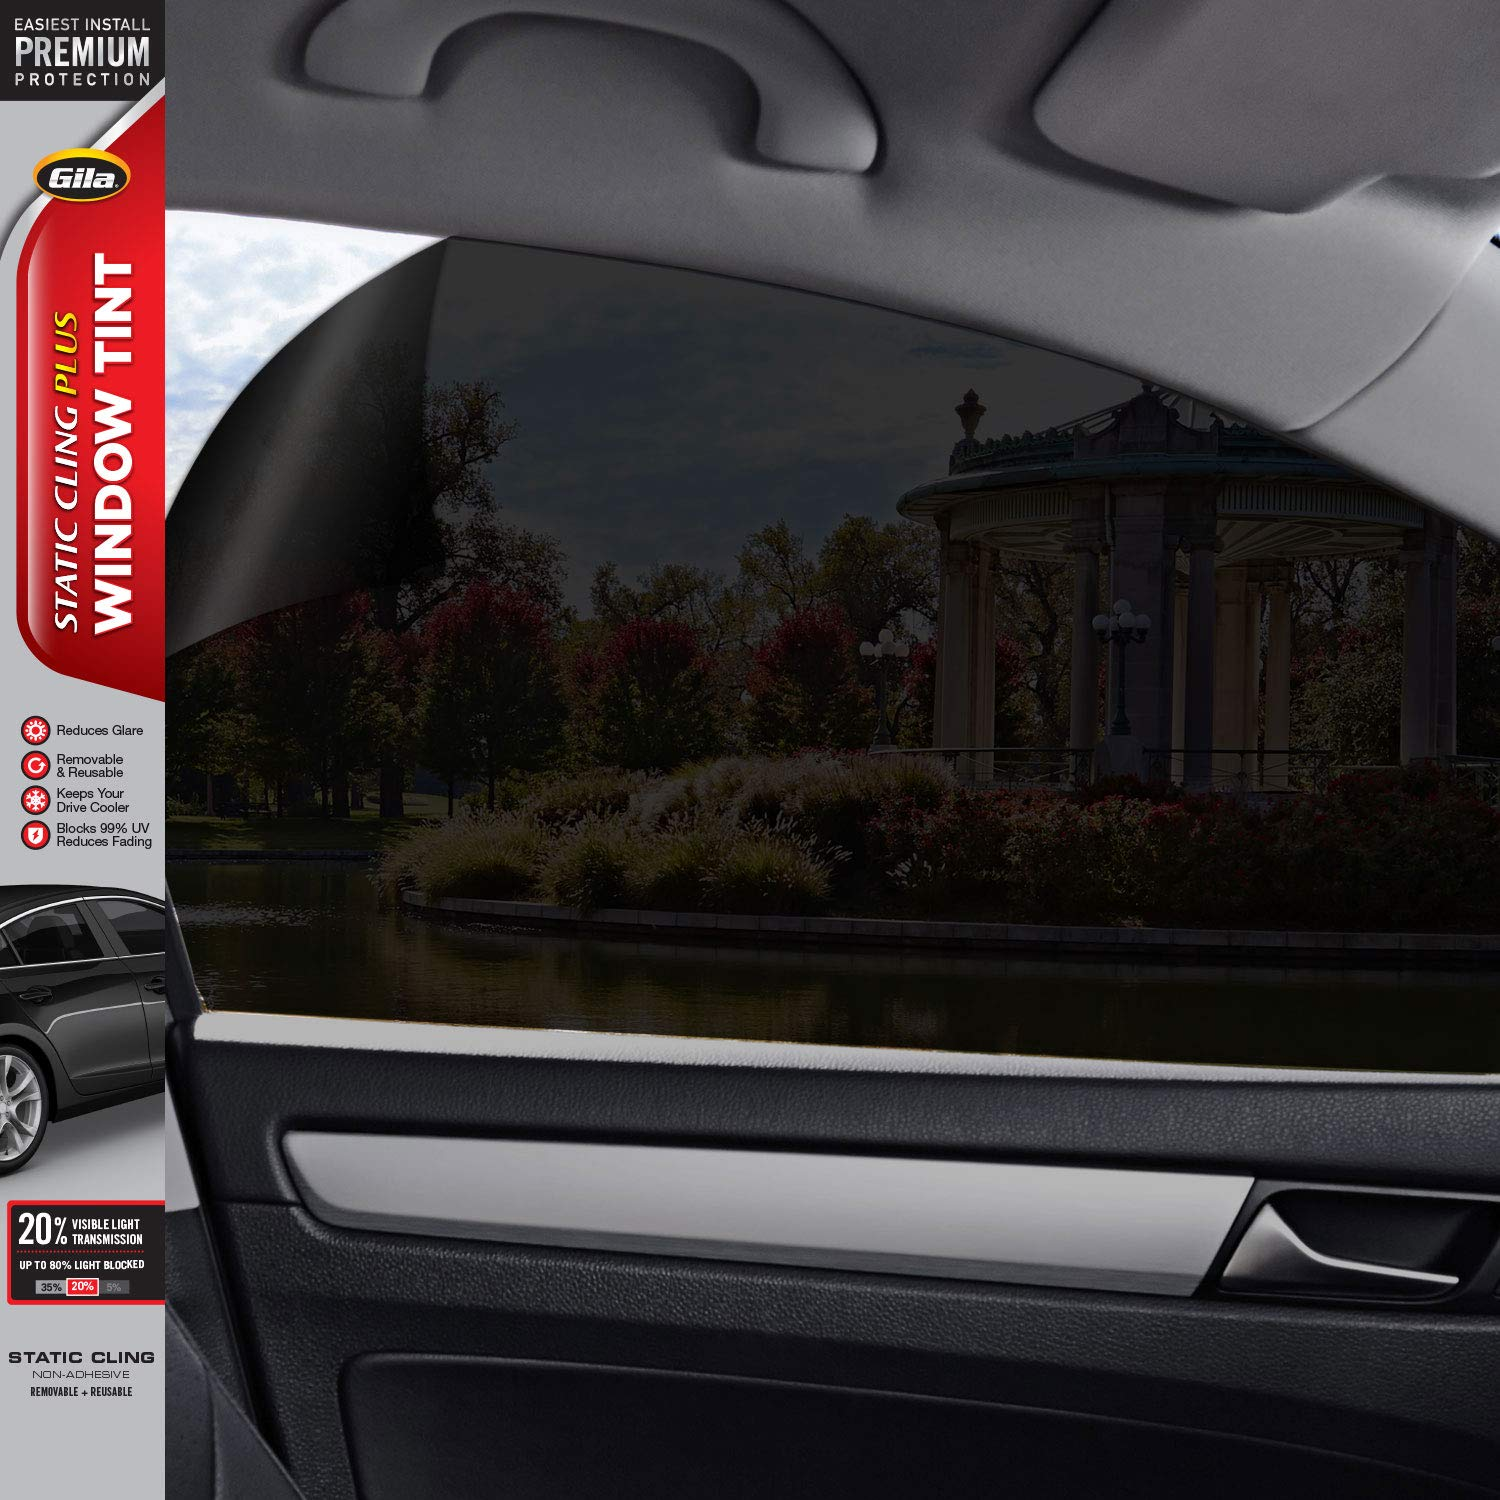 vitihipsy Uncut Roll Window Tint Film 35/% VLT 10ft Feet Car Home Office Glass